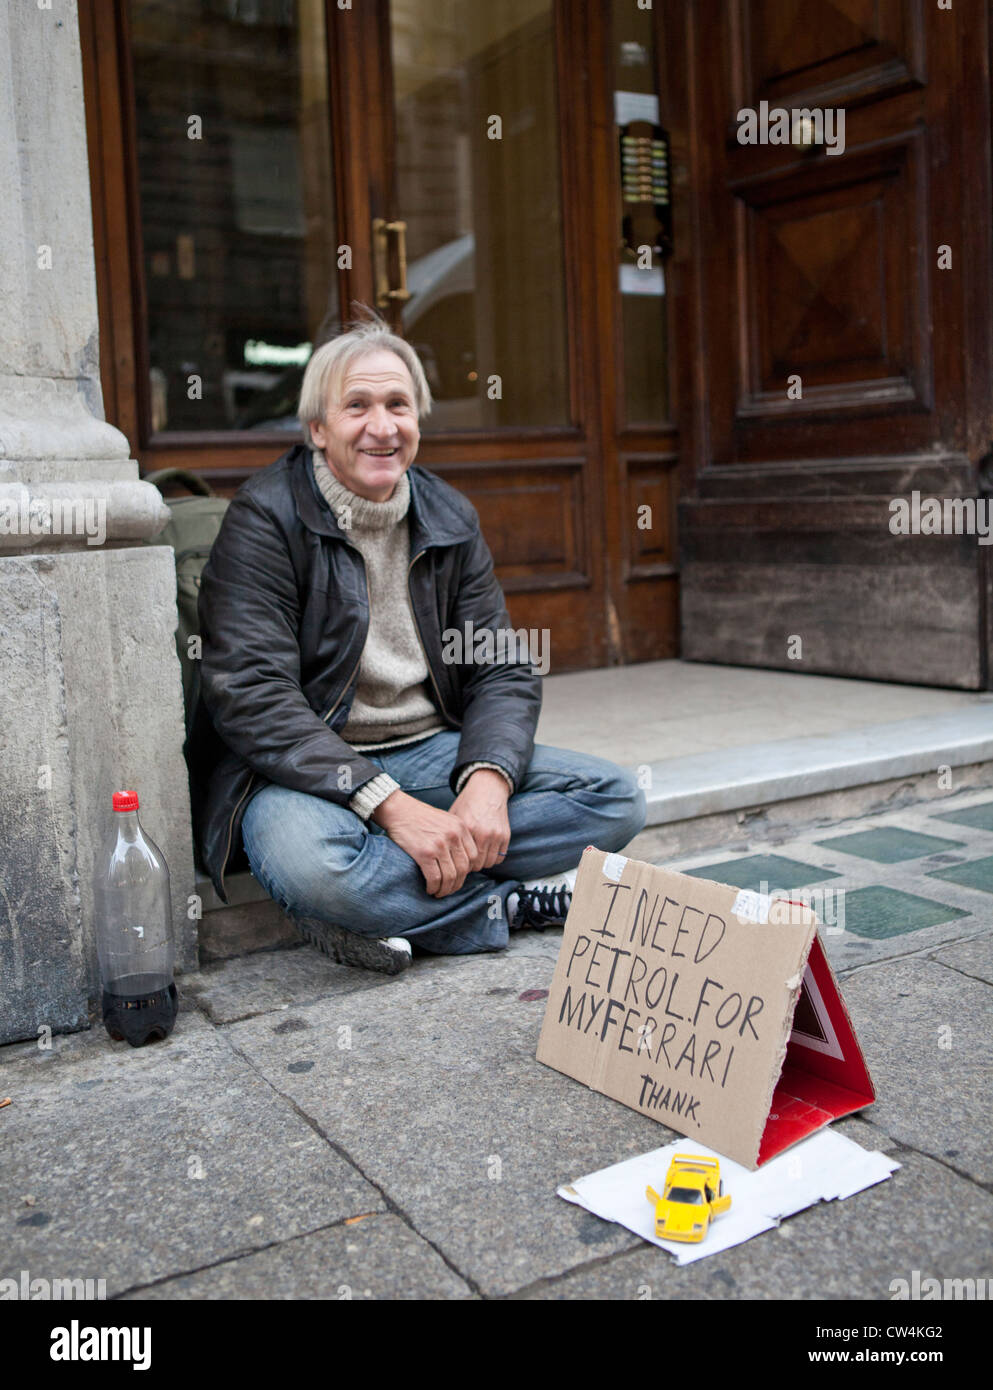 Homeless man on street begging, Genoa, Italy - Stock Image